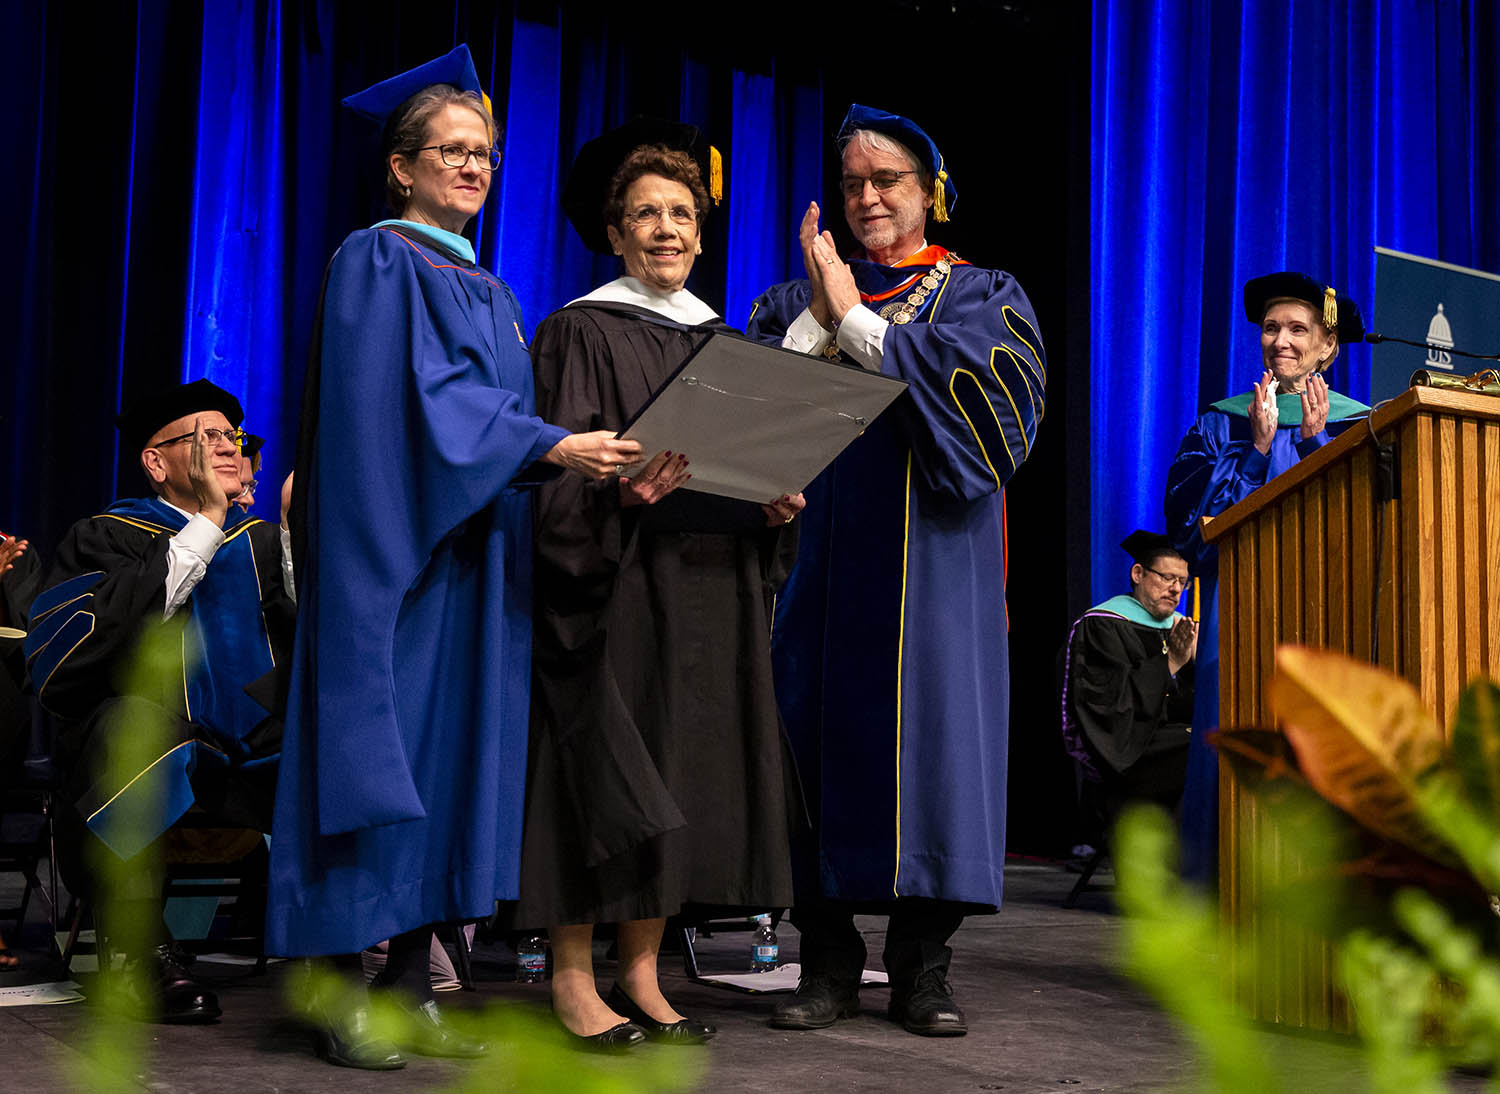 Karen Hasara, center, former Mayor of Springfield, is awarded an honorary degree of Doctor of Human Letters by DeeDee Williams, left, secretary of the University of Illinois Board of Trustees and University of Illinois President Timothy L. Killeen and University of Illinois Springfield Chancellor Susan Koch, right, during the University of Illinois Springfield's 48th annual Commencement Ceremonies at the Back of Springfield Center, Saturday, May 11, 2019, in Springfield, Ill. [Justin L. Fowler/The State Journal-Register]